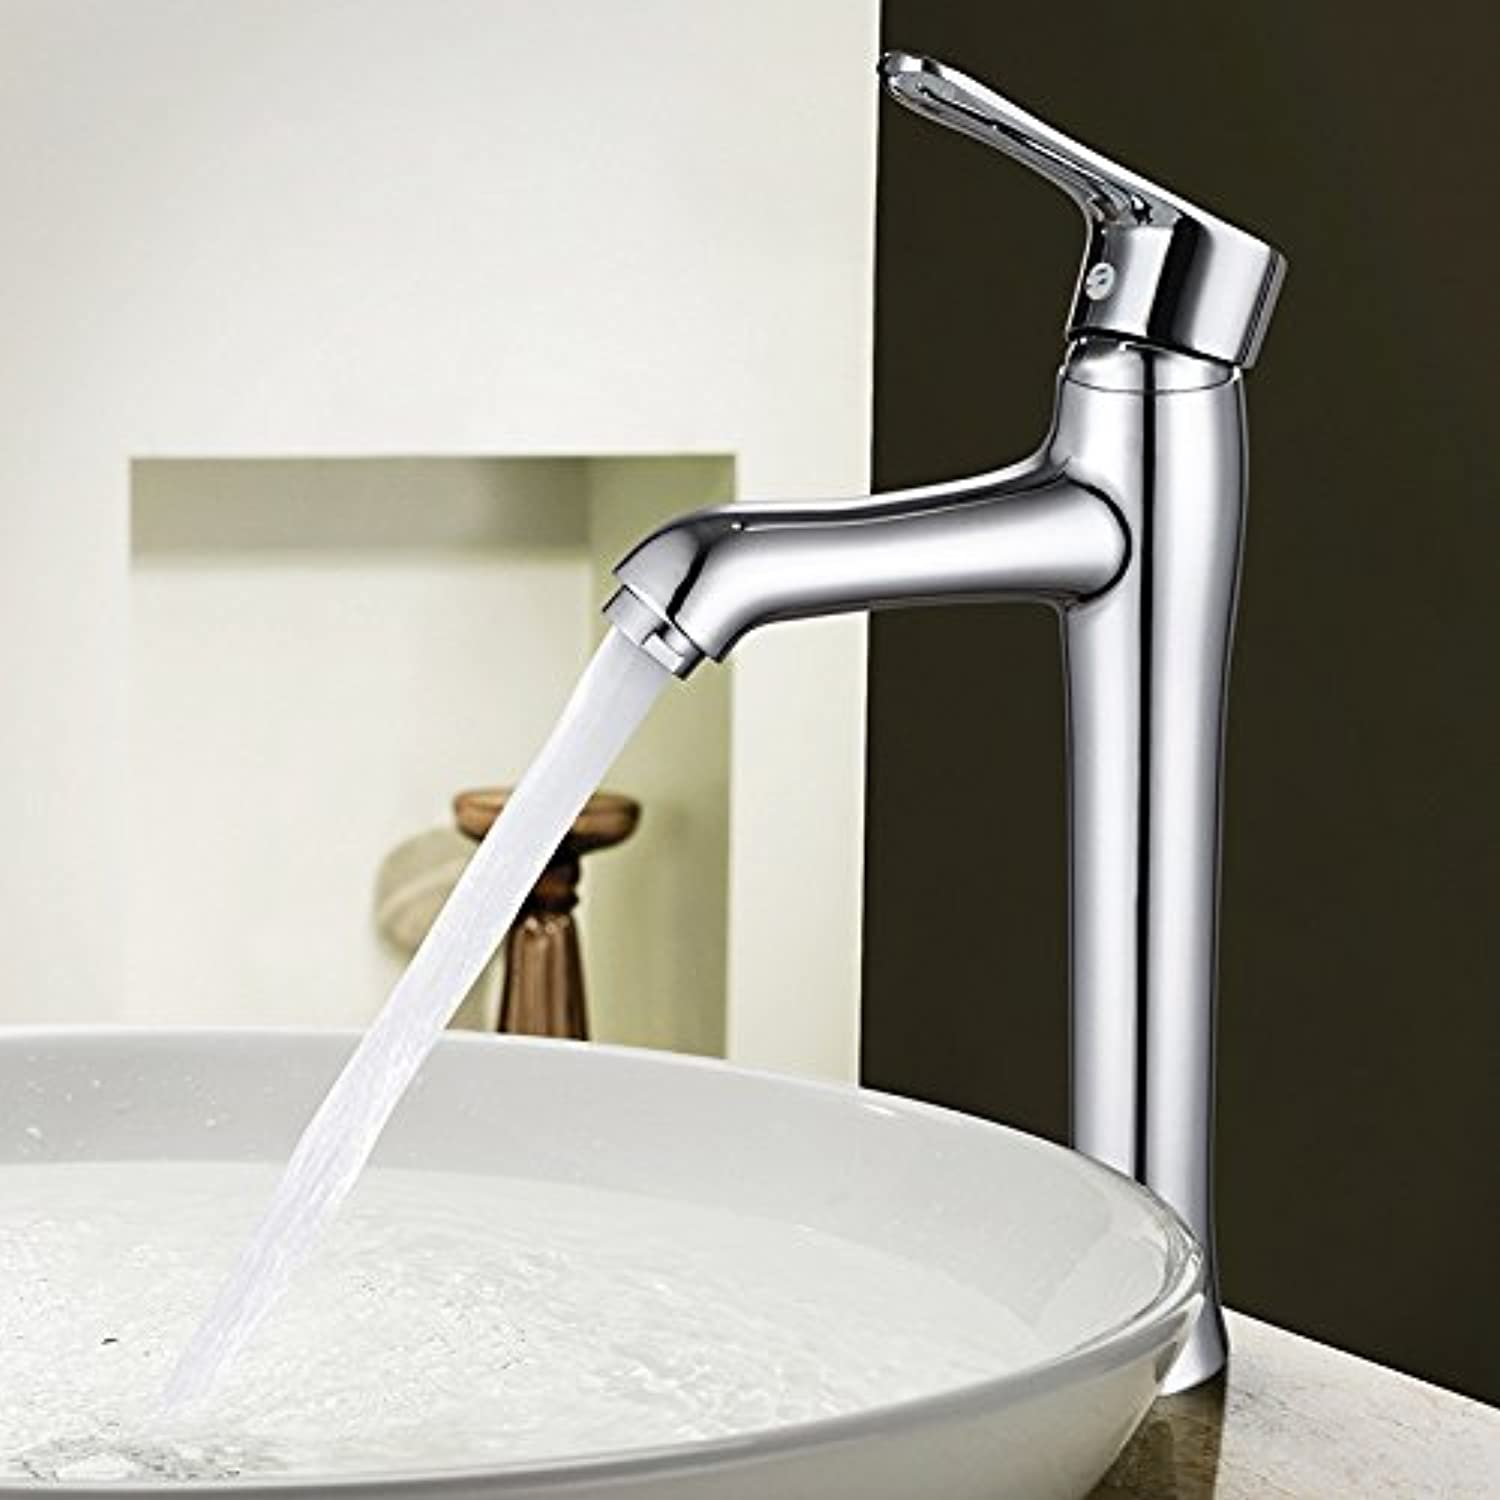 TYAW-SHOP A water faucet bathroom sink hot and cold dual control single hole tower